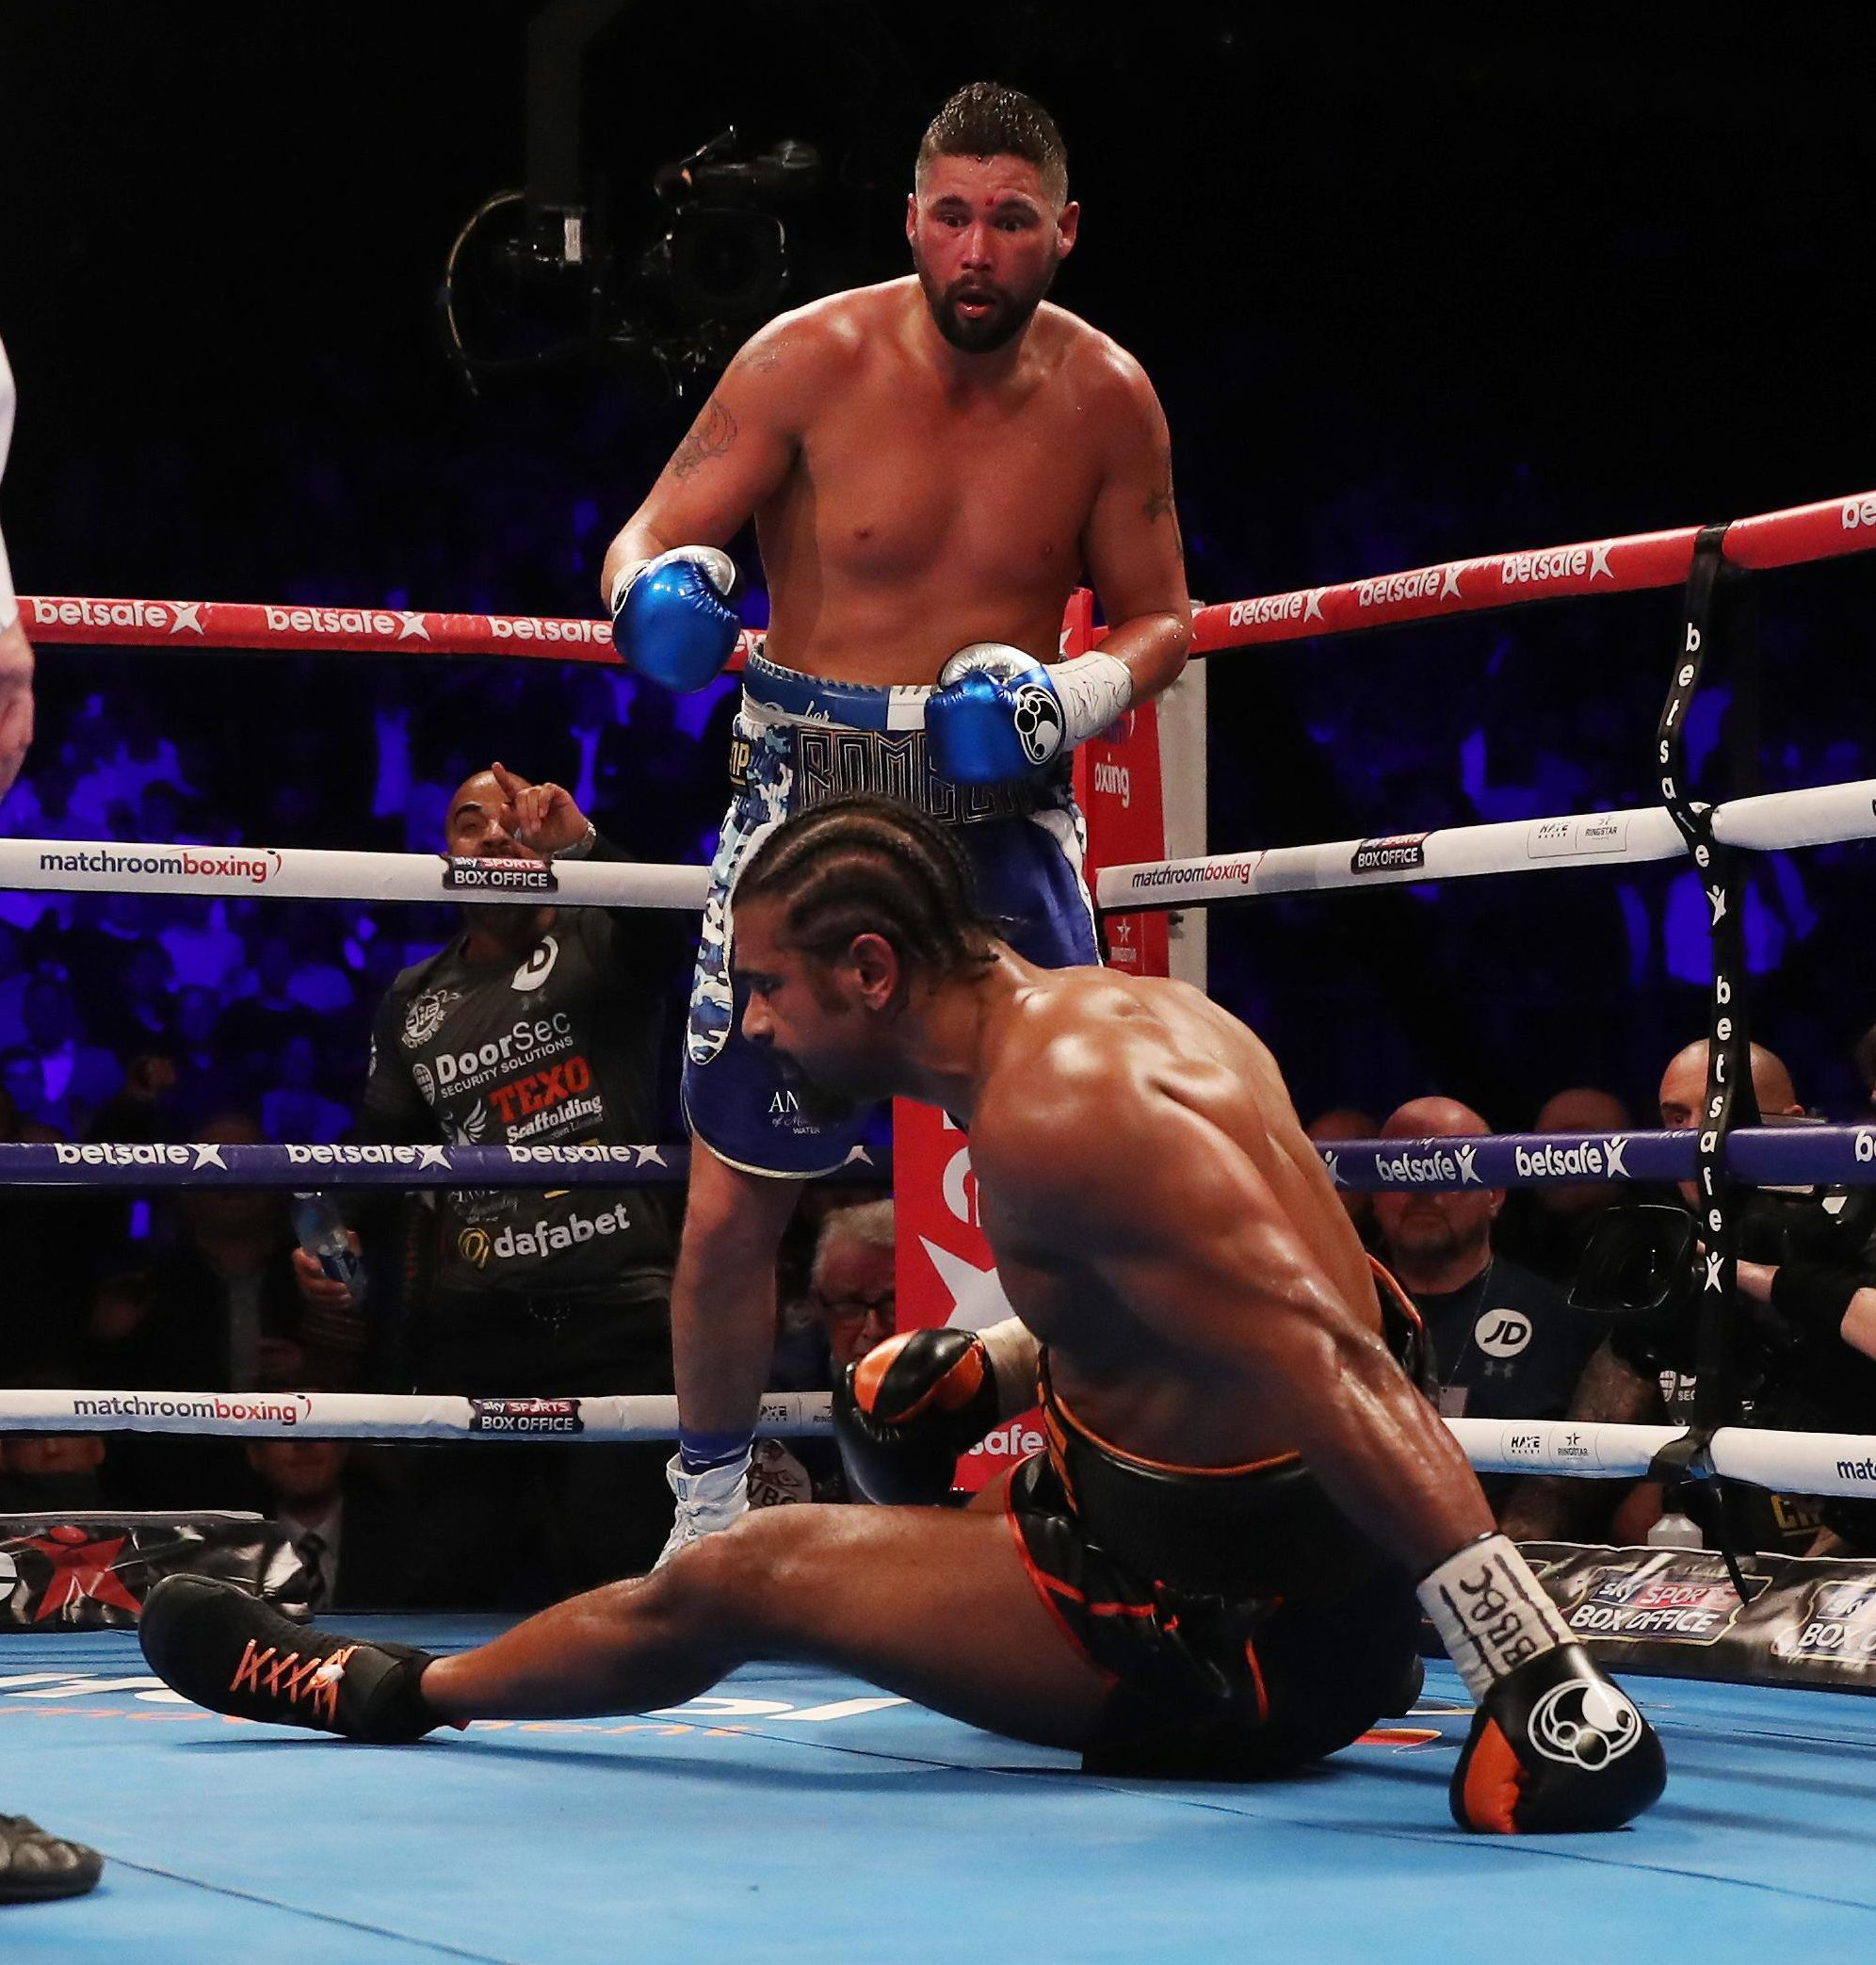 Haye struggled to hold his balance in the latter stages off the fight after his damaging injury